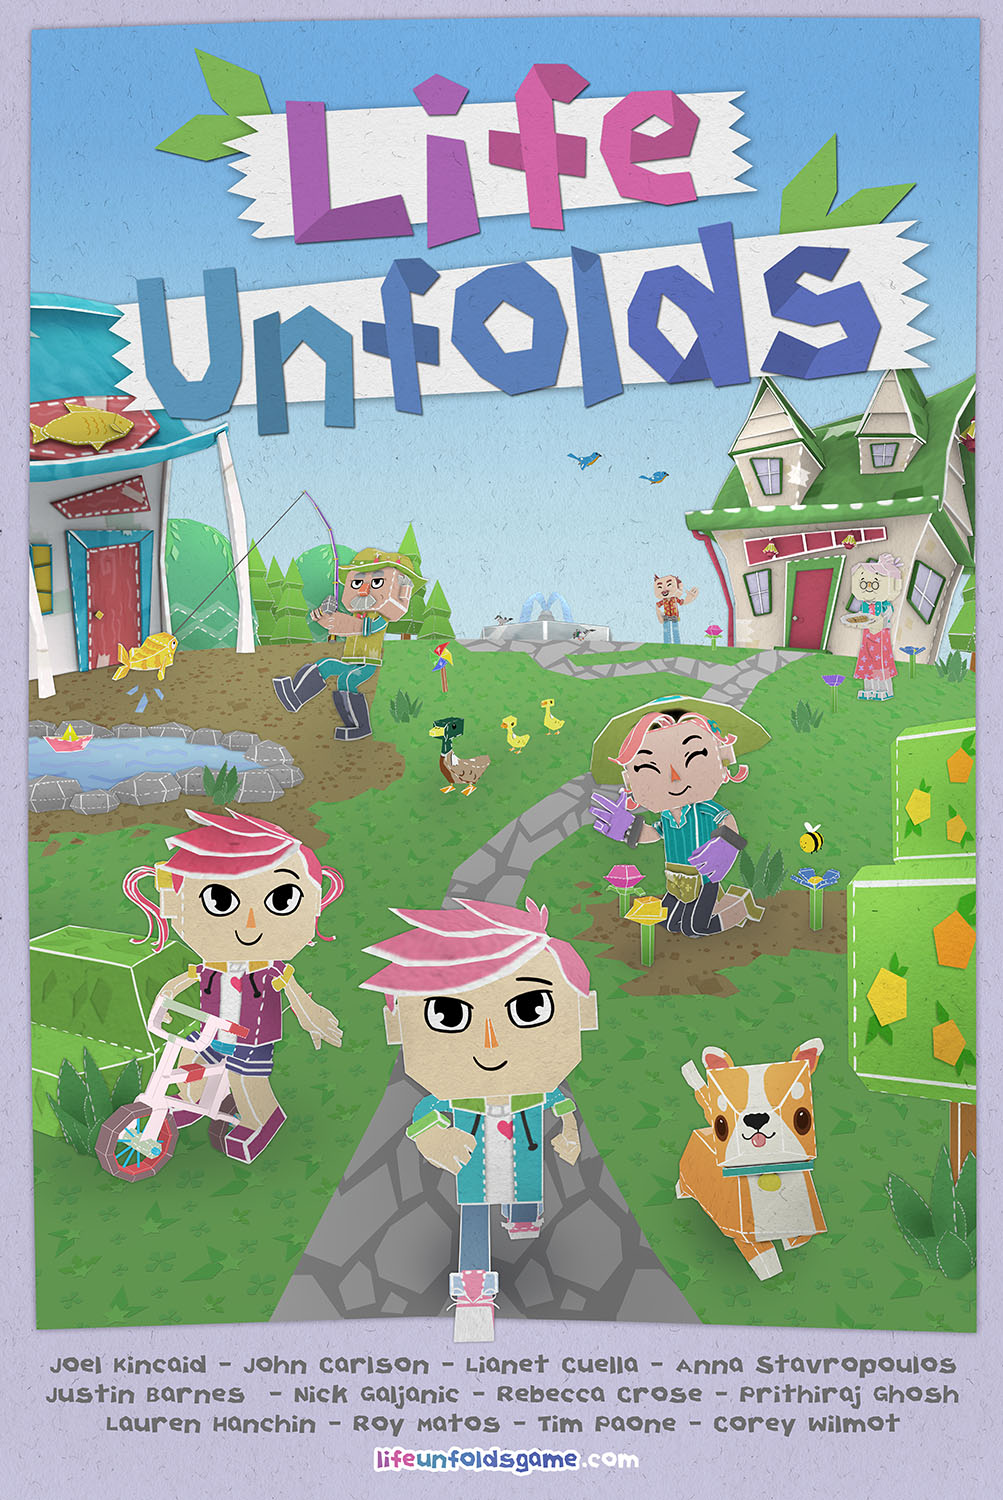 lifeUnfolds_poster_web